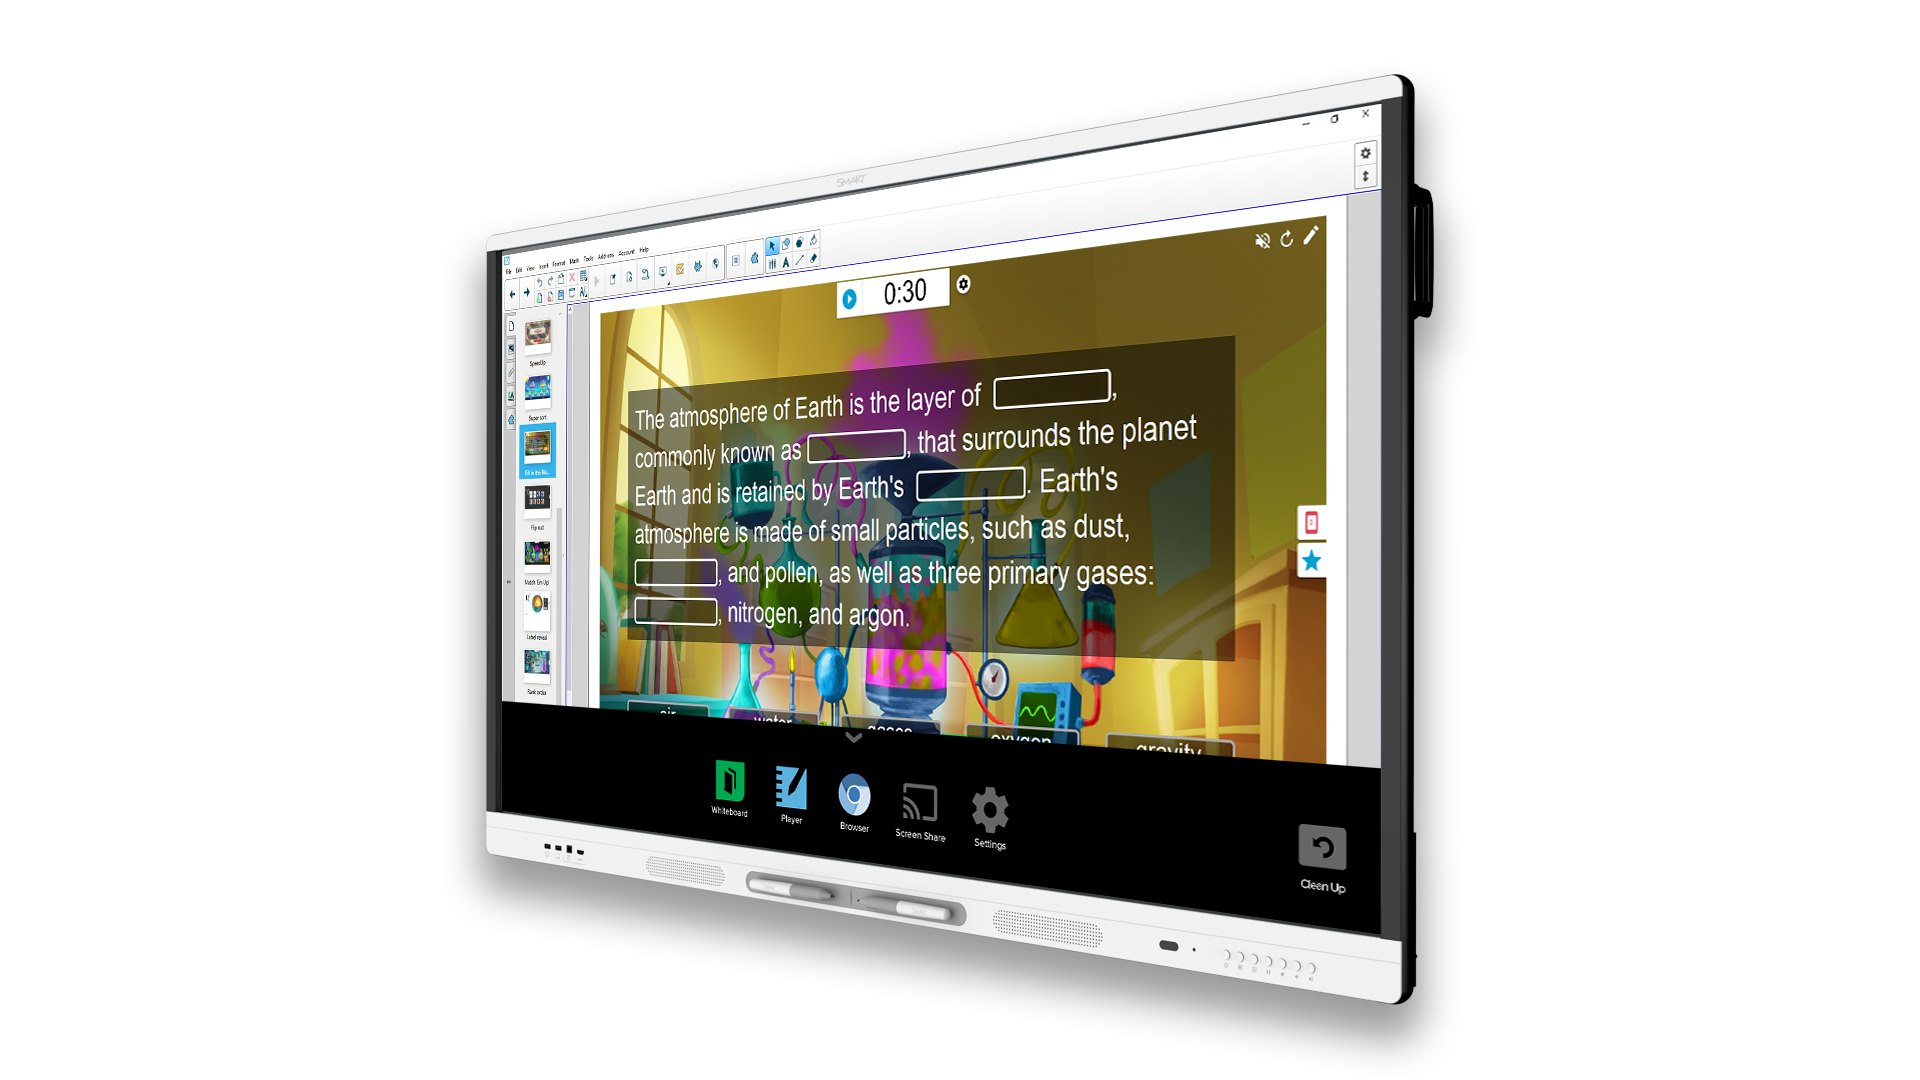 SMART MX265 Interactive Display with iQ and SMART Learning Suite (SBID-MX265)